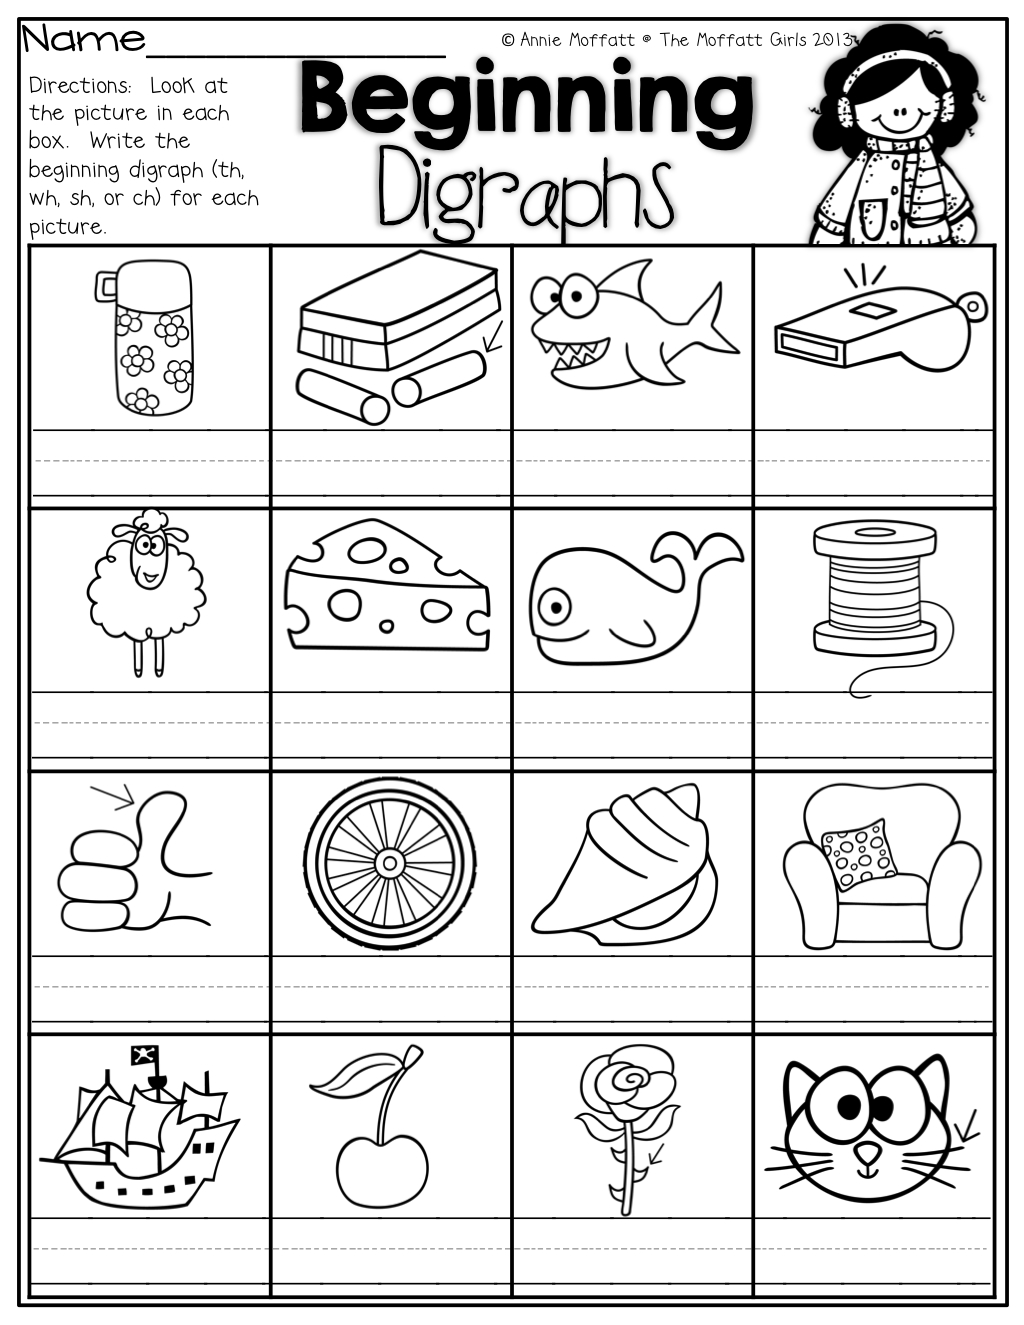 Beginning Digraphs! Write The Beginning Digraphs For Each Picture - Sh Worksheets Free Printable